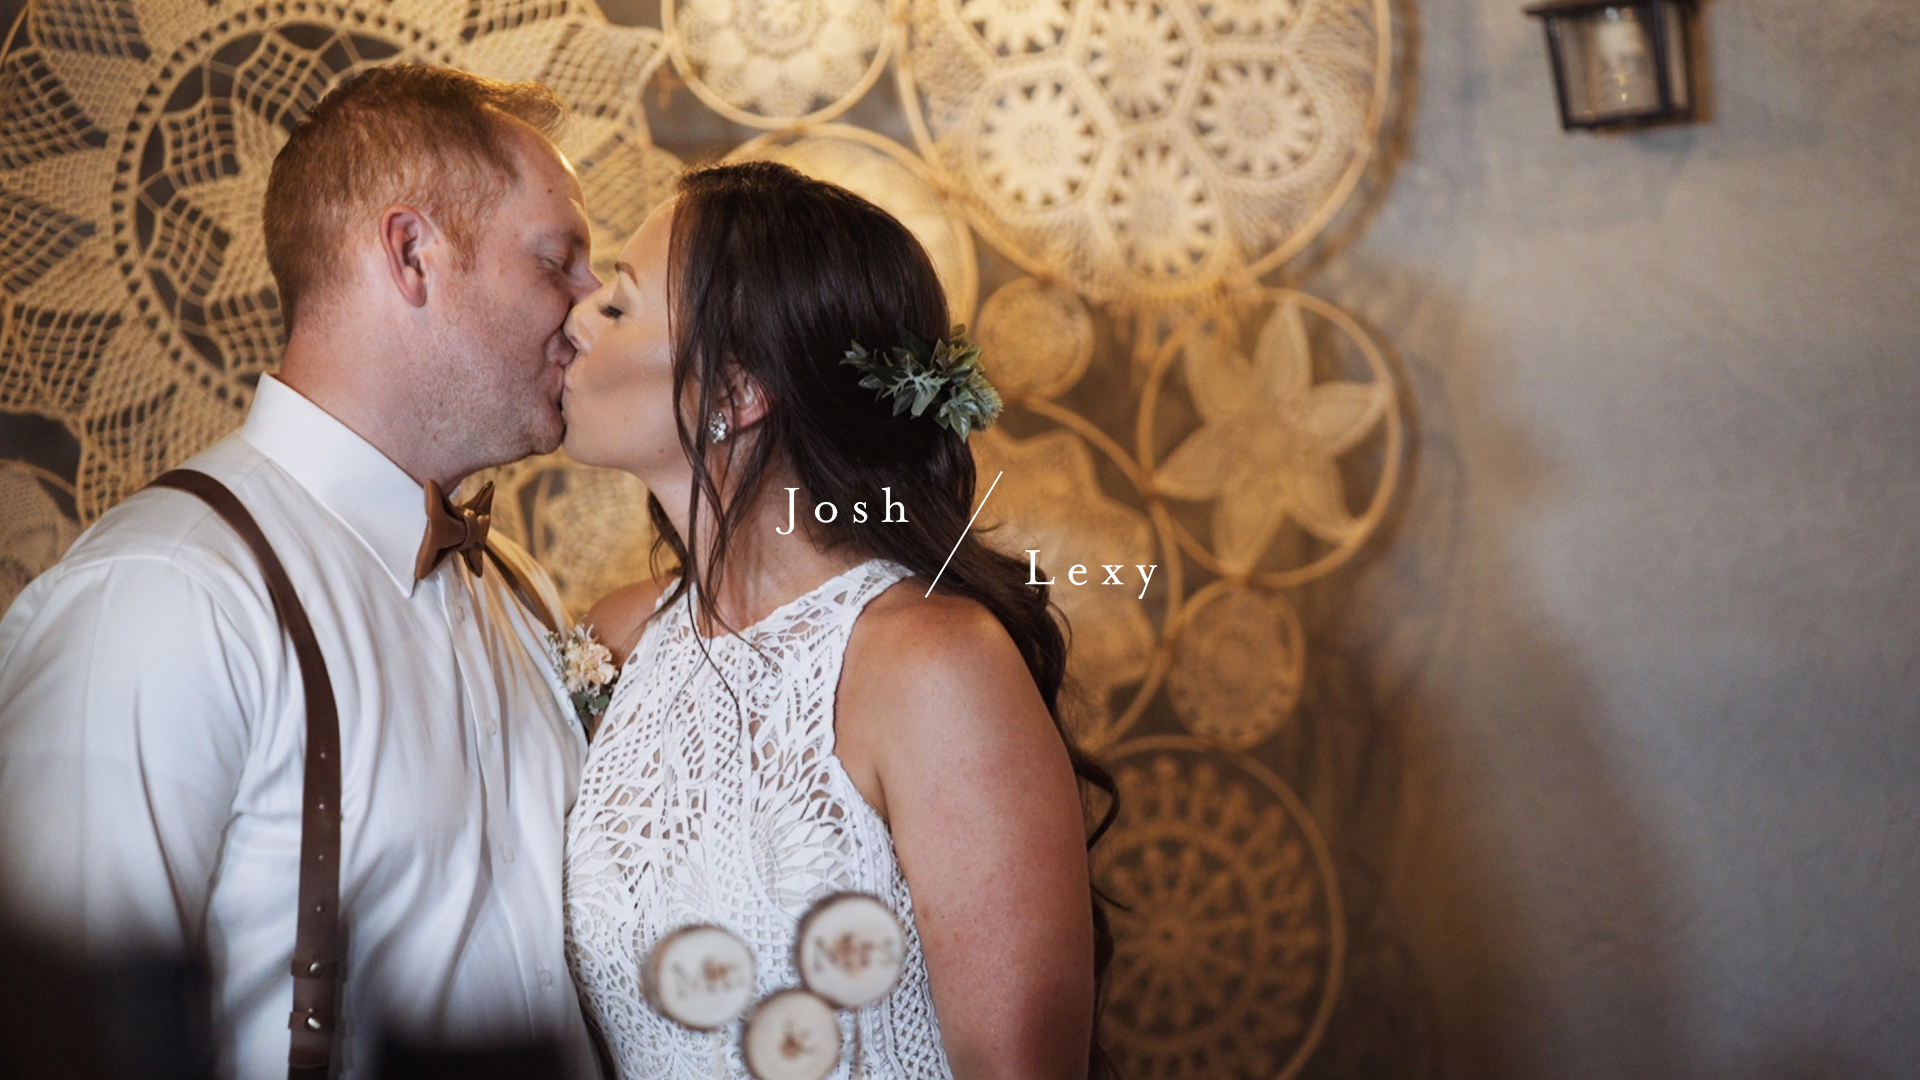 Josh + Lexy | Manteca, California | Backyard